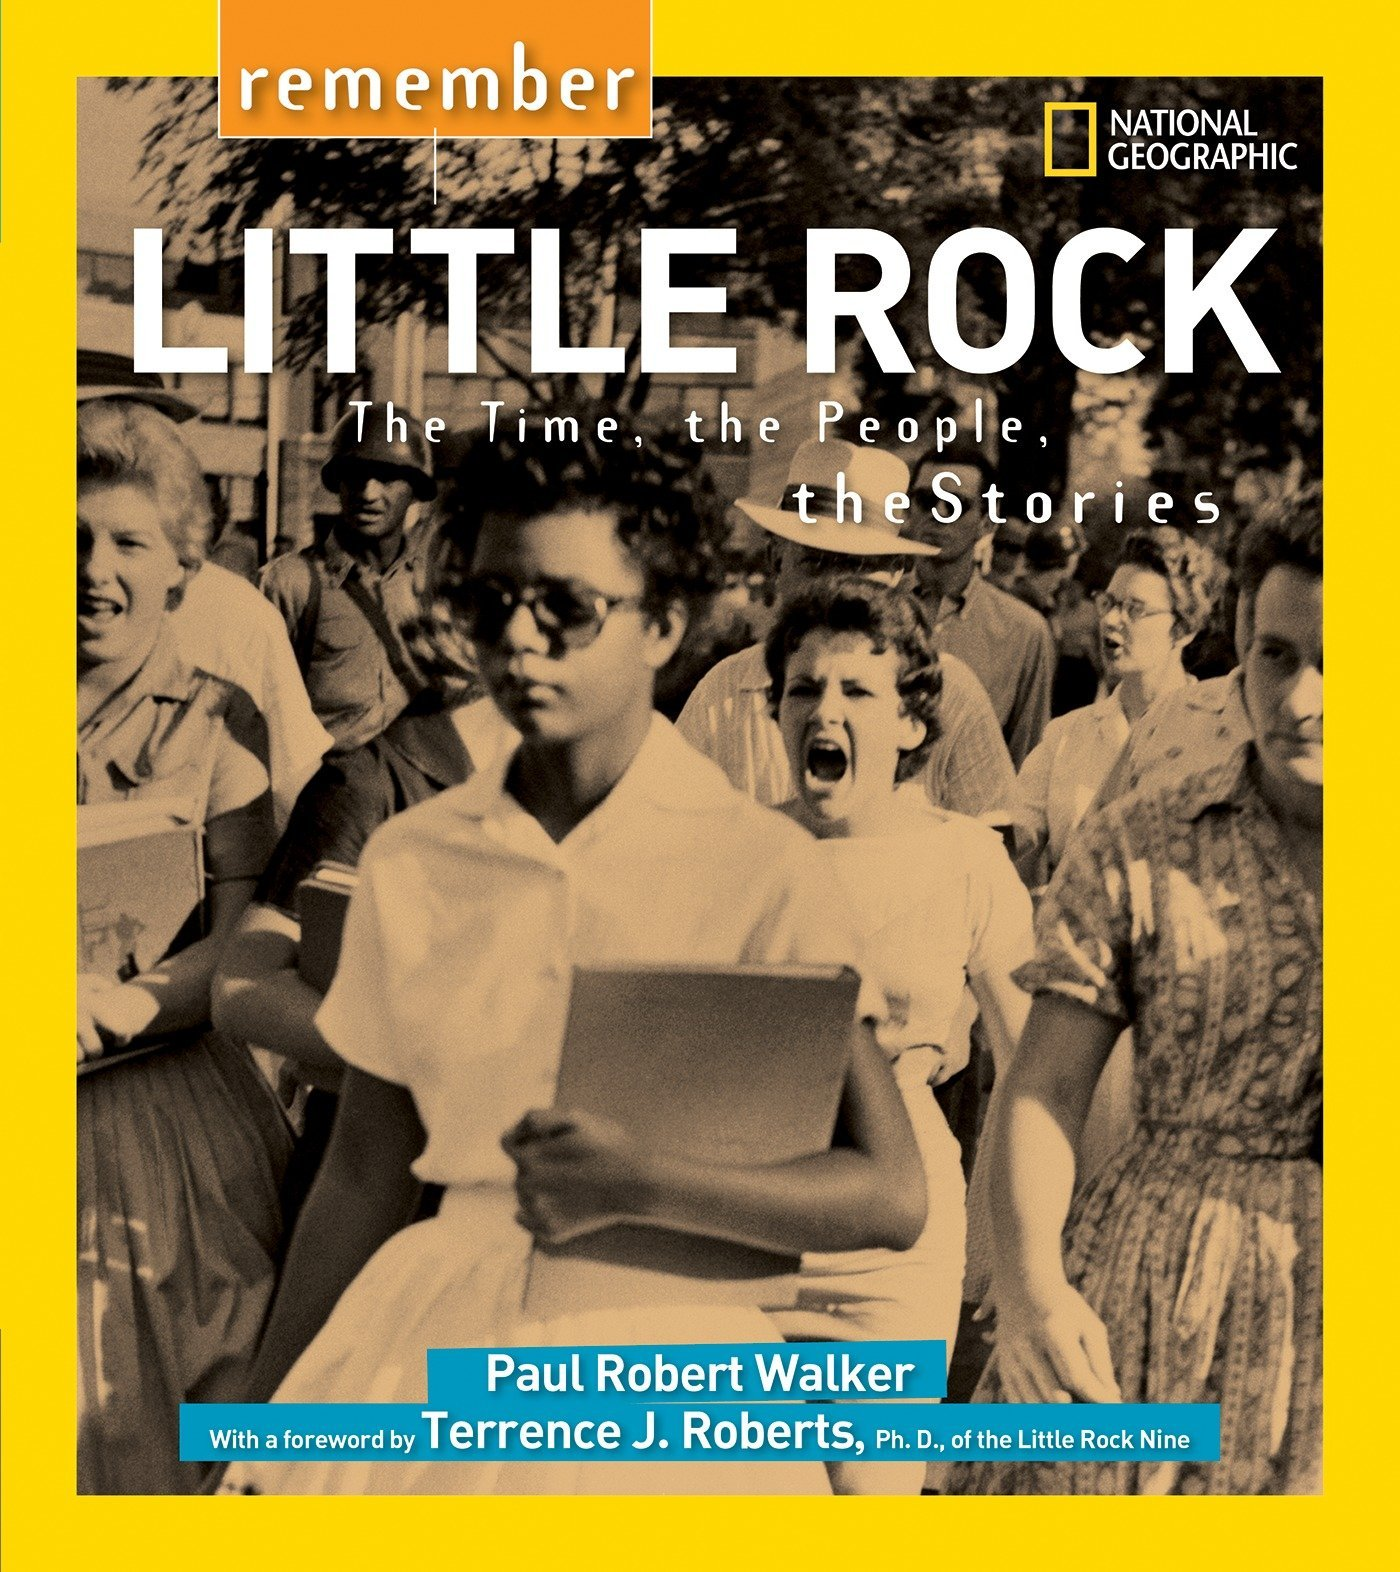 Remember Little Rock: The Time, the People, the Stories pdf